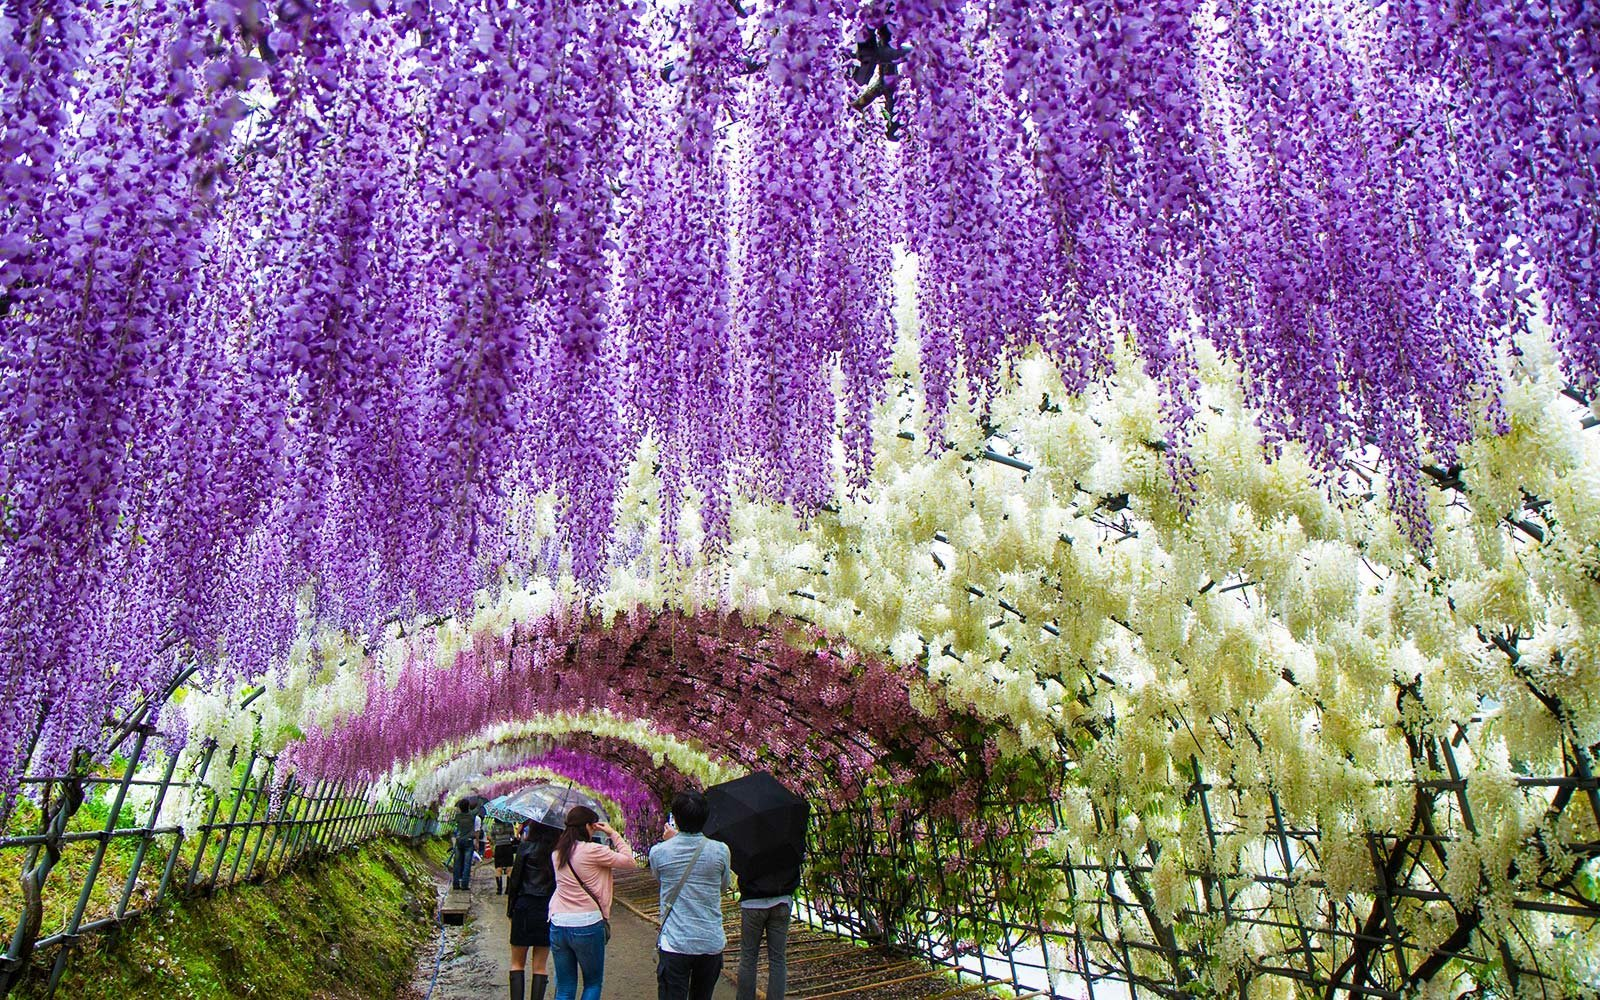 Japan 39 S Wisteria Festival May Be The Most Beautiful Place